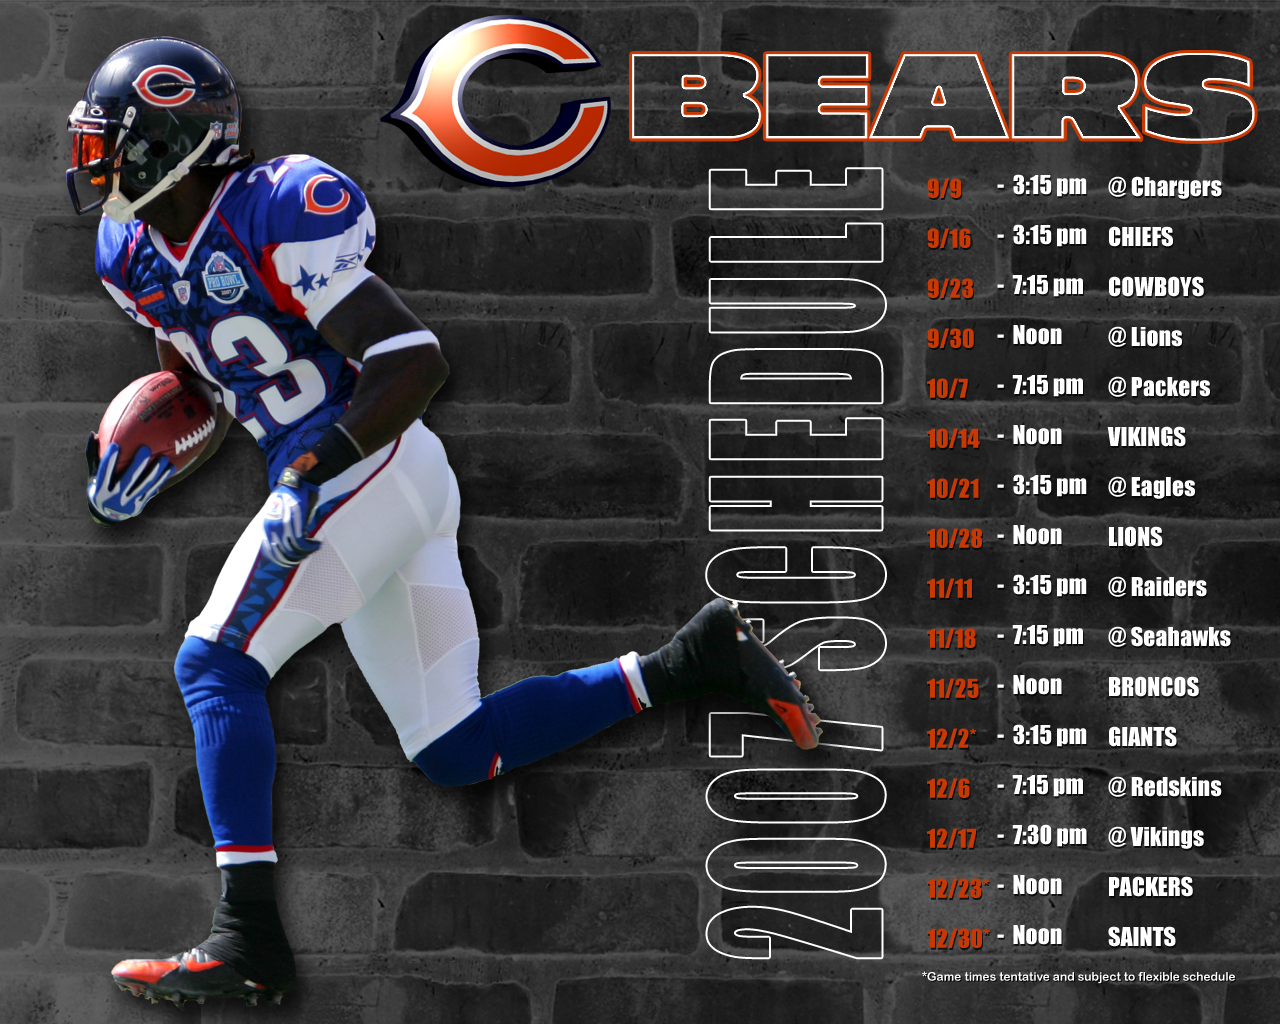 1920x1080 Chicago Bears Wallpaper Border Wallpapers Hd 1280x1024